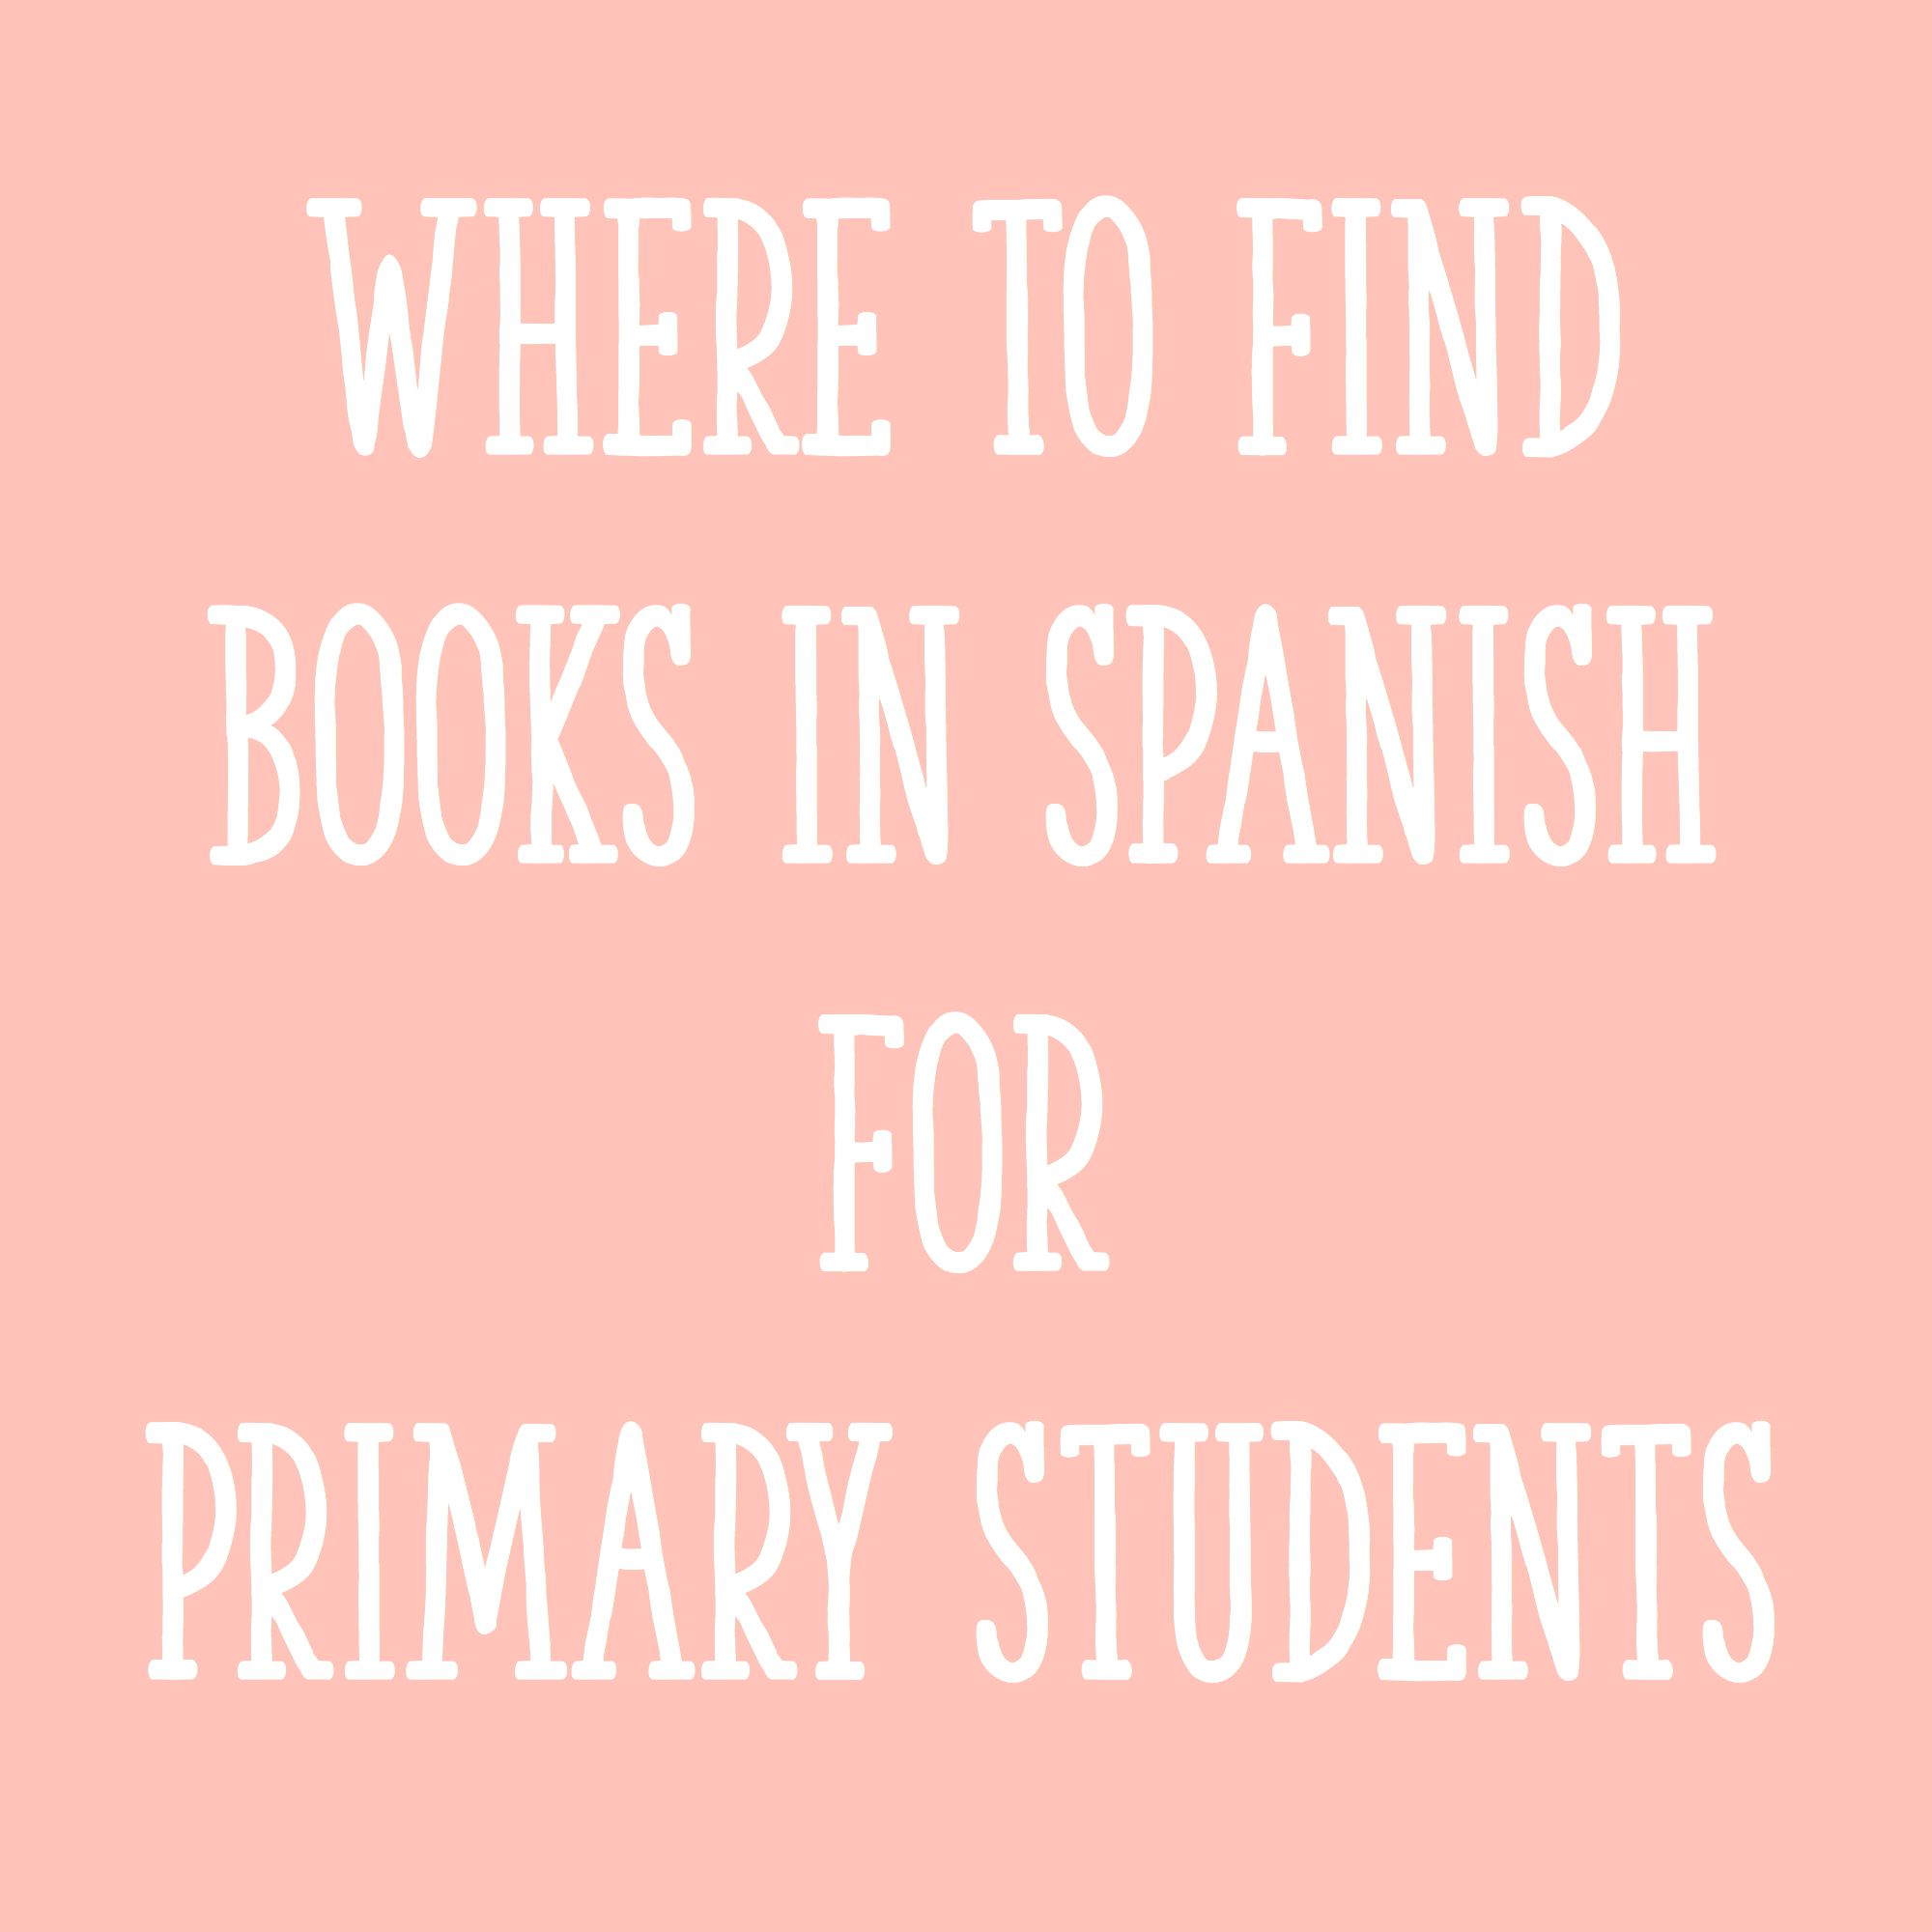 Where To Find Books In Spanish For Primary Students